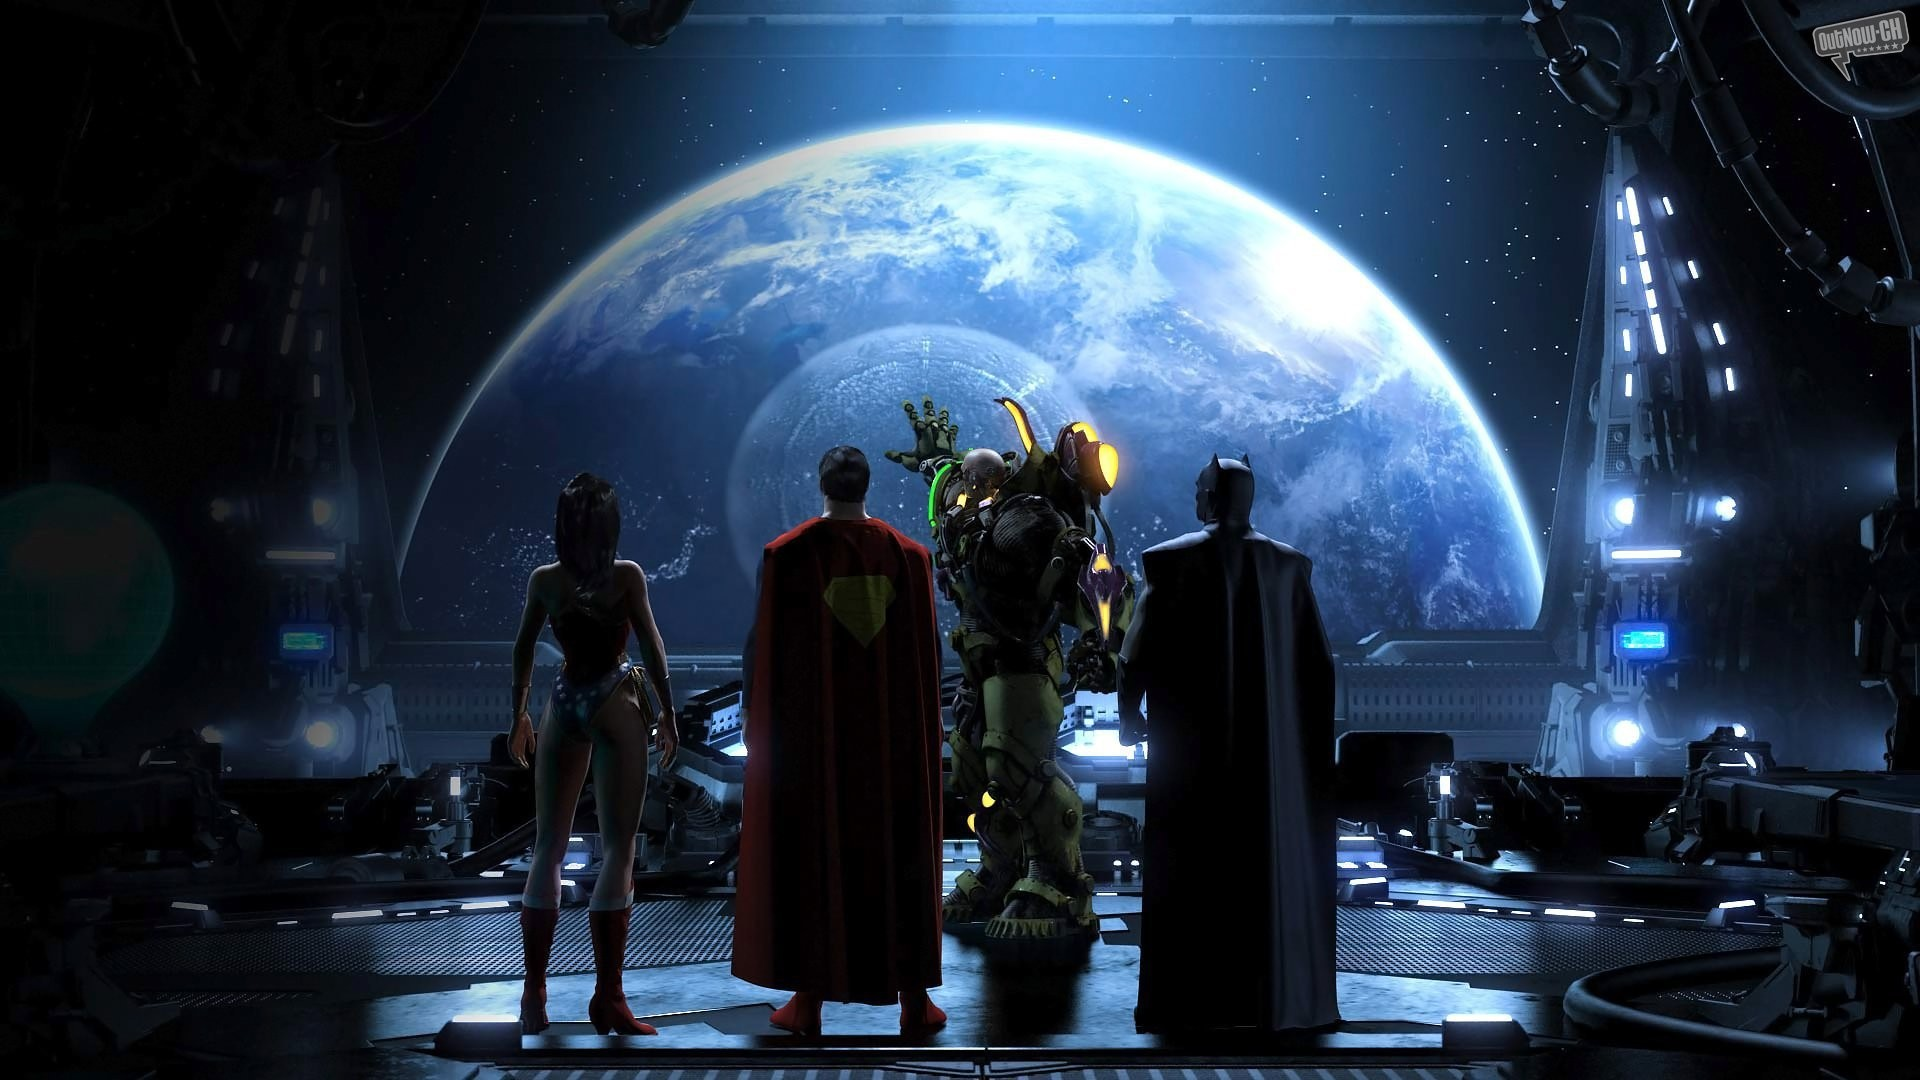 Justice League Wallpaper iPhone (85+ images)